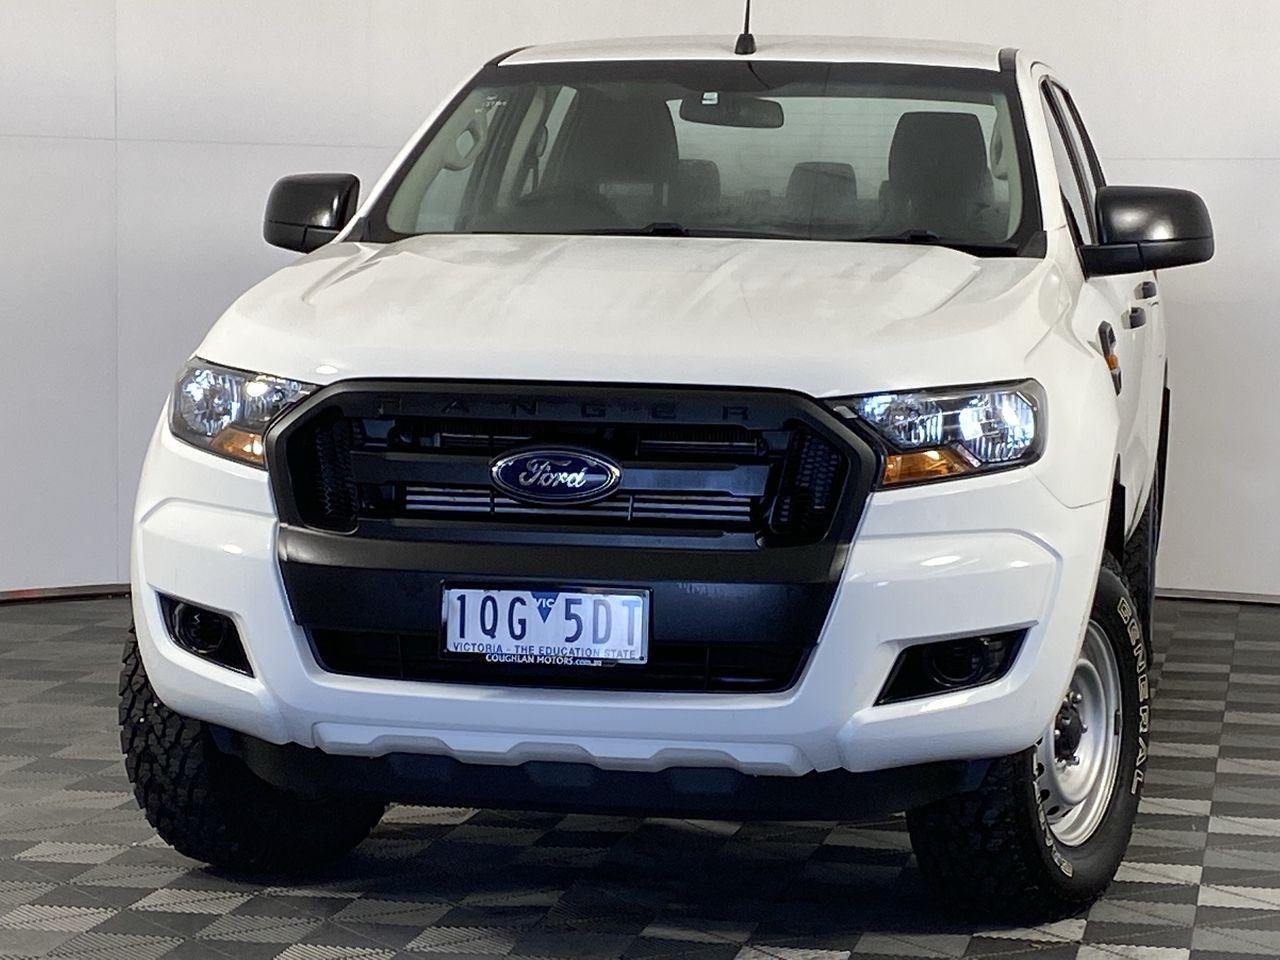 2016 Ford Ranger XL 4X4 PX II Turbo Diesel Automatic Crew Cab Chassis